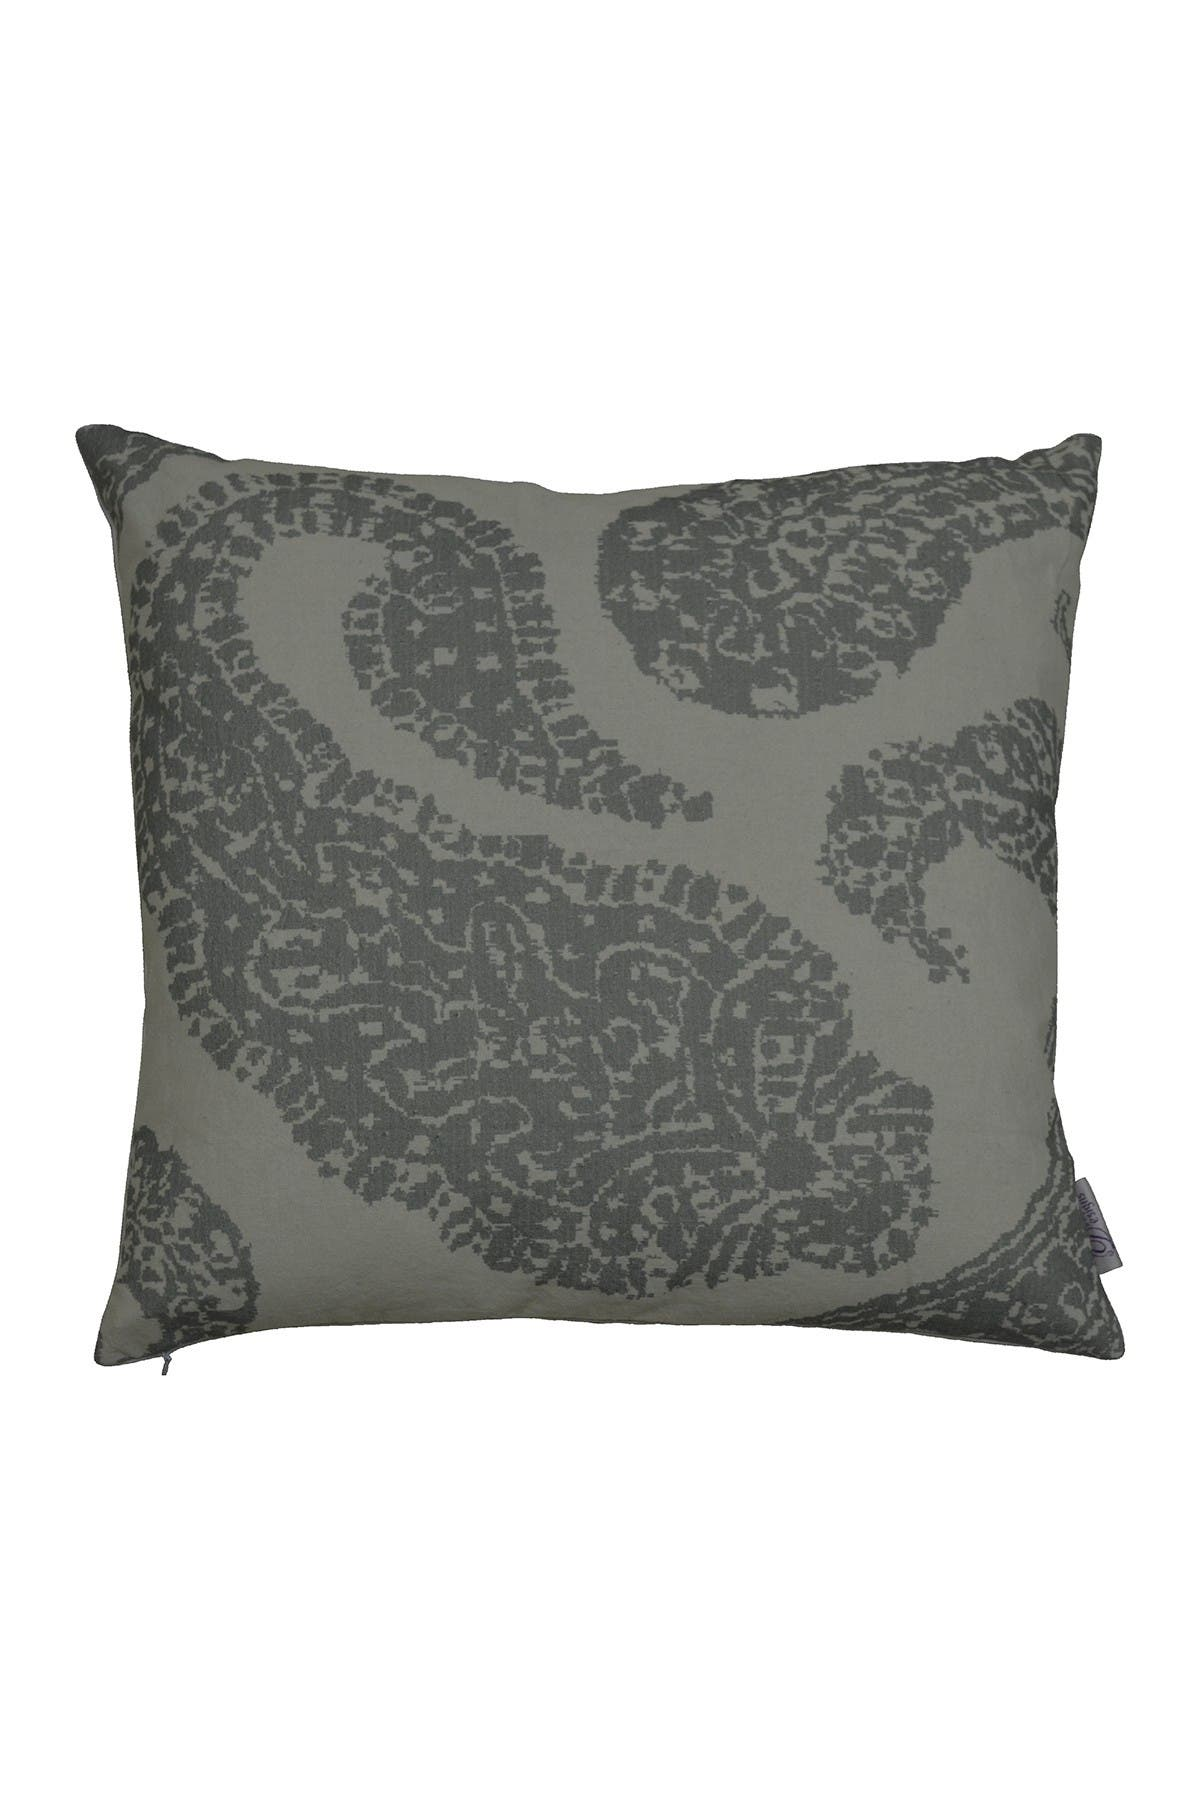 "Image of DIVINE HOME Gray Overscale Paisley Throw Pillow - 20""x20"""